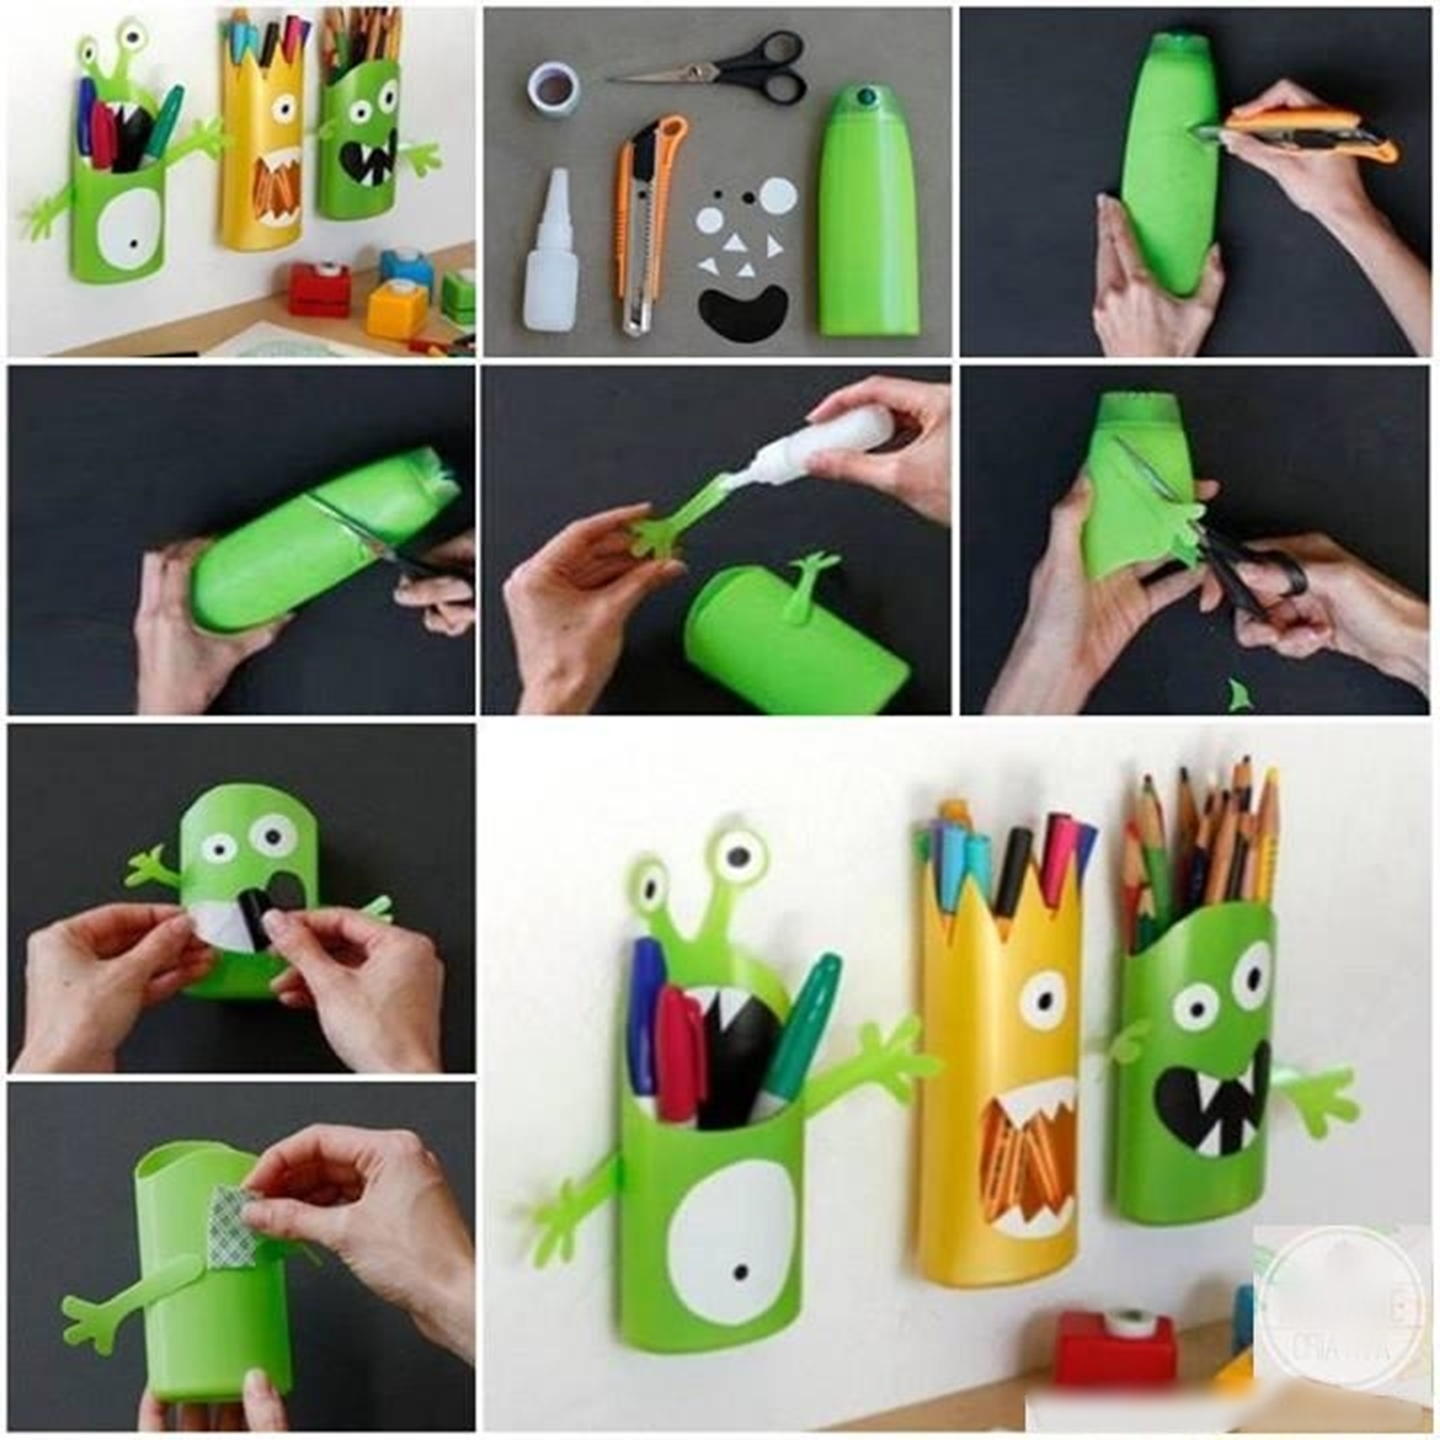 How to Turn Shampoo Bottles Into Monster Pencil Holders M Wonderful DIY  Monster Pencil Holders From Shampoo Bottles